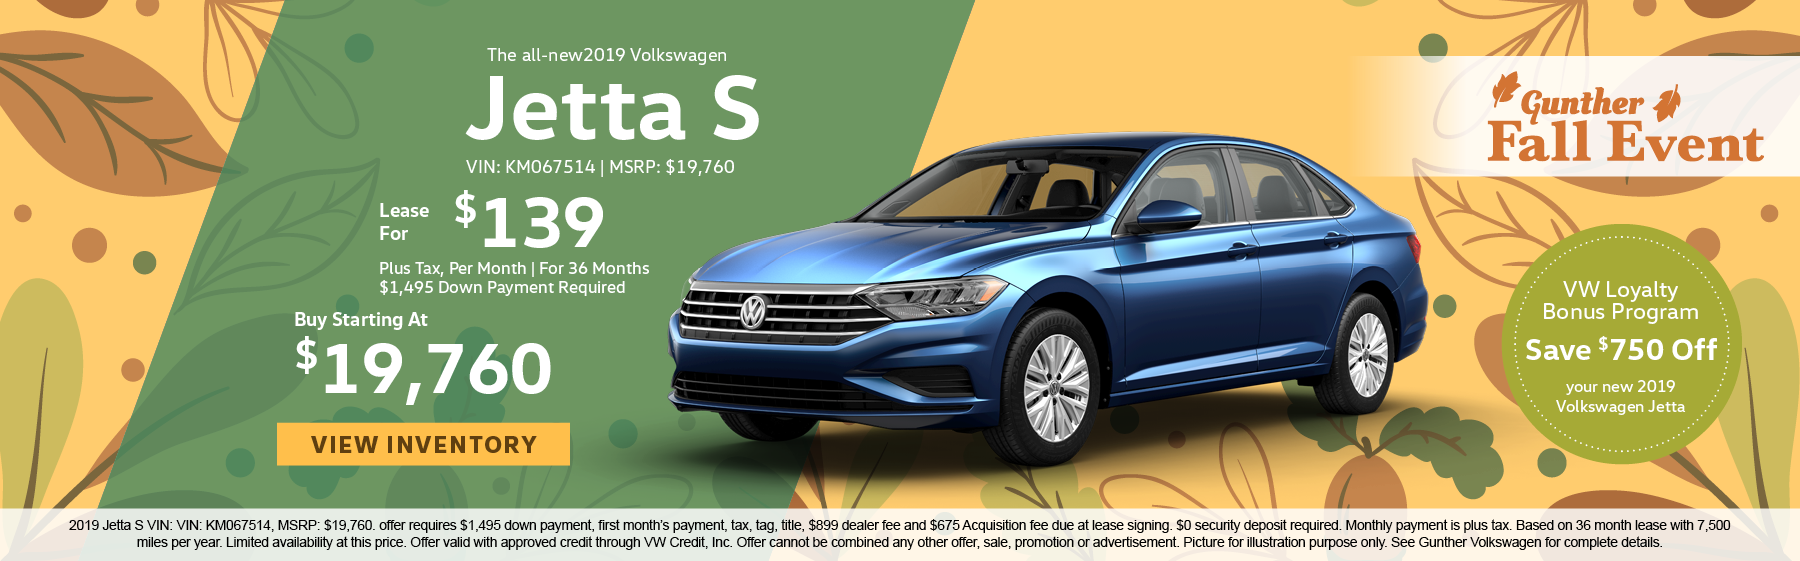 2019 Jetta S VIN: KM067514, MSRP: $19,760. offer requires $1,495 down payment, first month's payment, tax, tag, title, $899 dealer fee and $675 Acquisition fee due at lease signing. $0 security deposit required. Monthly payment is plus tax. Based on 36 month lease with 7,500 miles per year. Limited availability at this price. Offer valid with approved credit through VW Credit, Inc. Offer cannot be combined any other offer, sale, promotion or advertisement. Picture for illustration purpose only. See Gunther Volkswagen for complete details.